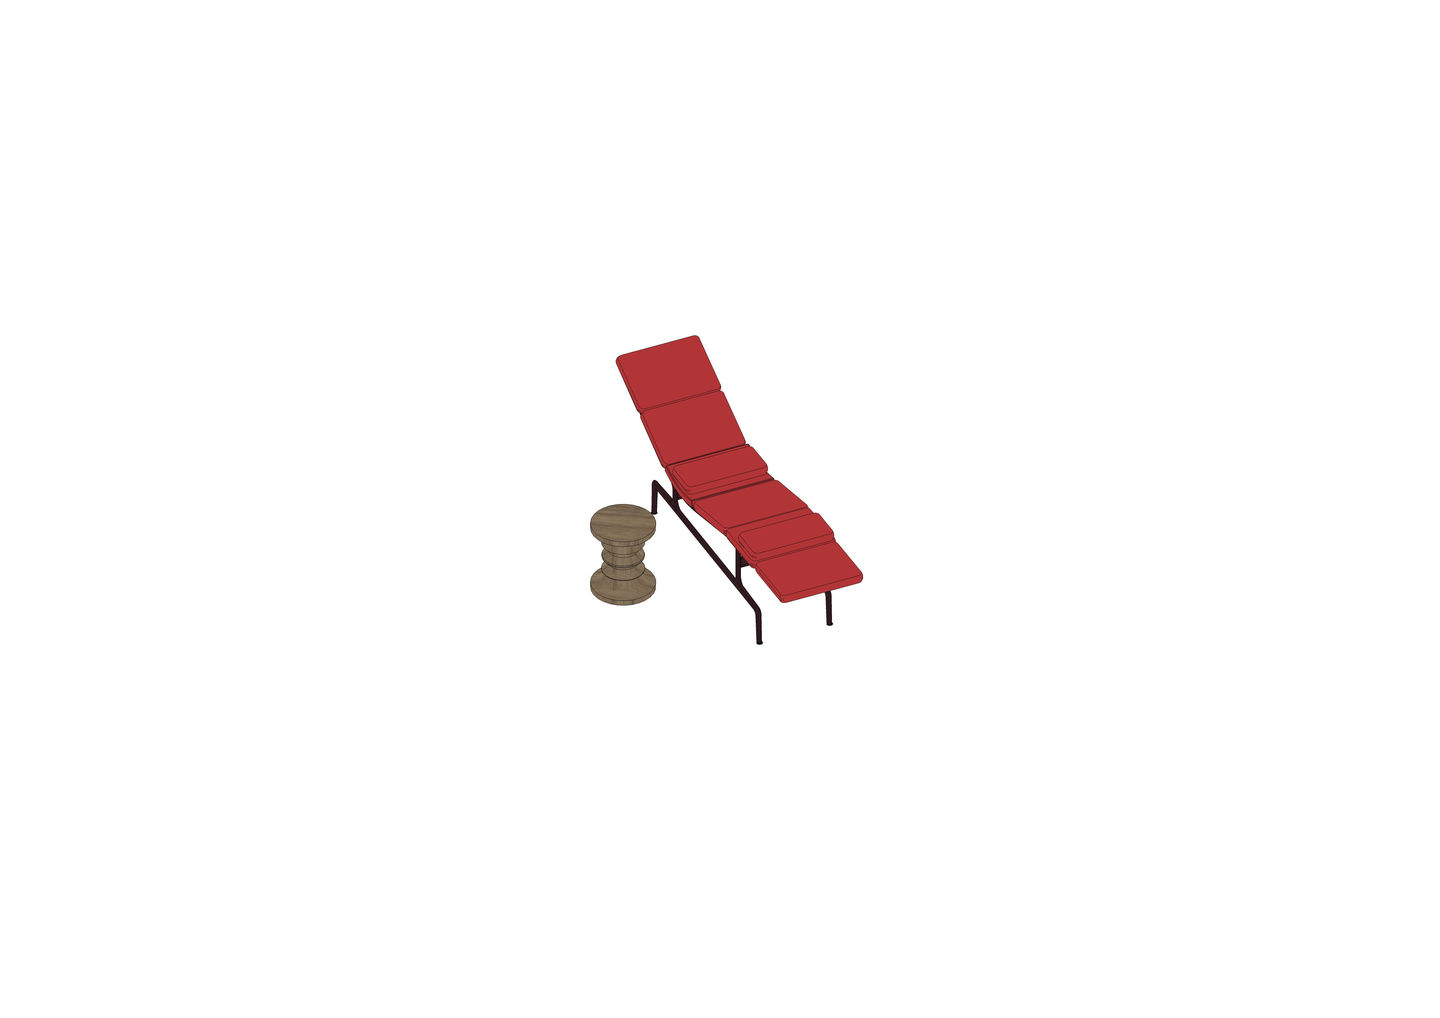 07 - Soft Pad Chaise ES 106, Stool-3D